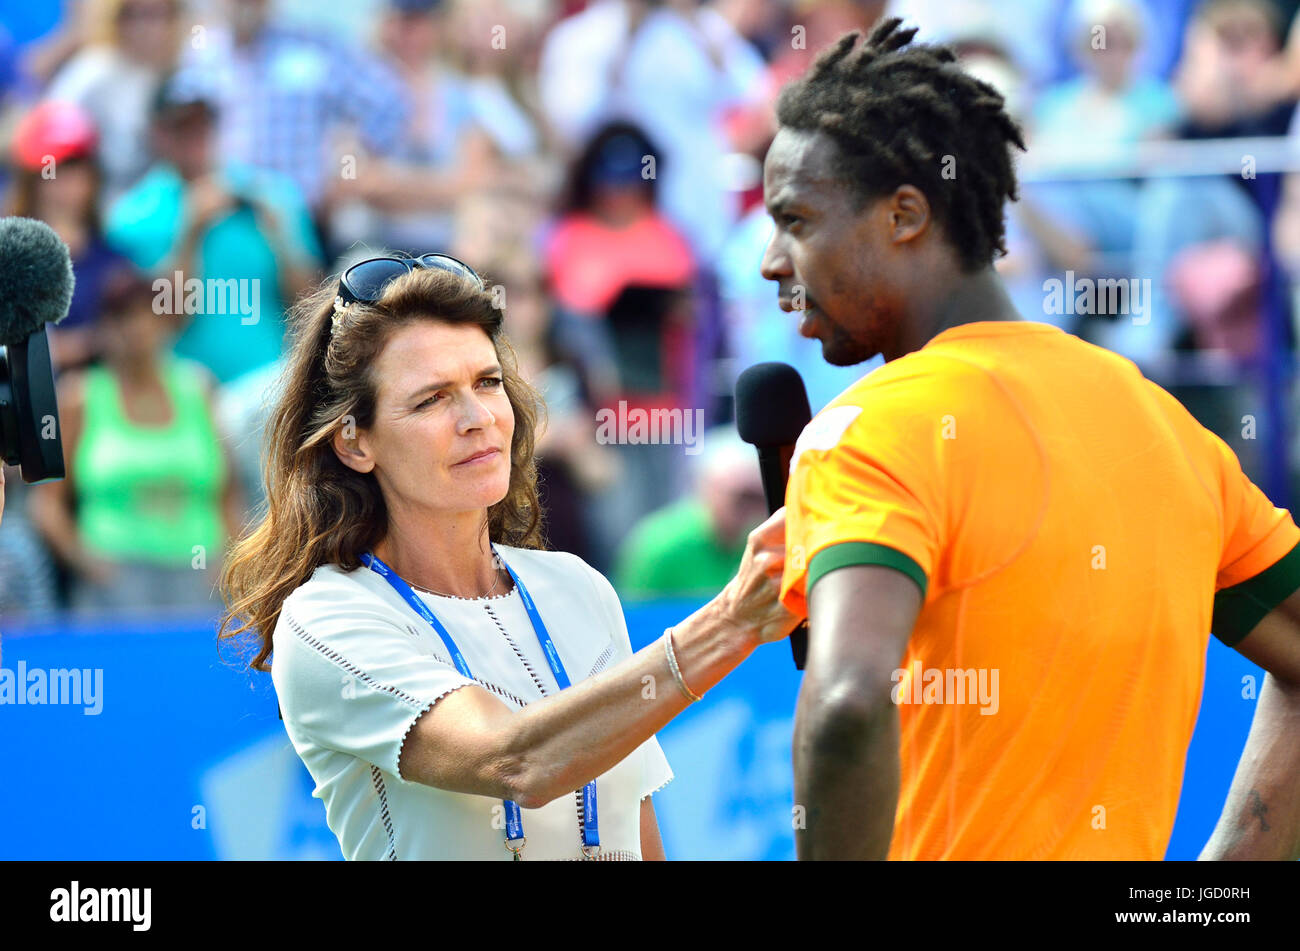 Annabel Croft, former British no 1 tennis player, interviewing Gael Monfils on centre court after the final of the - Stock Image